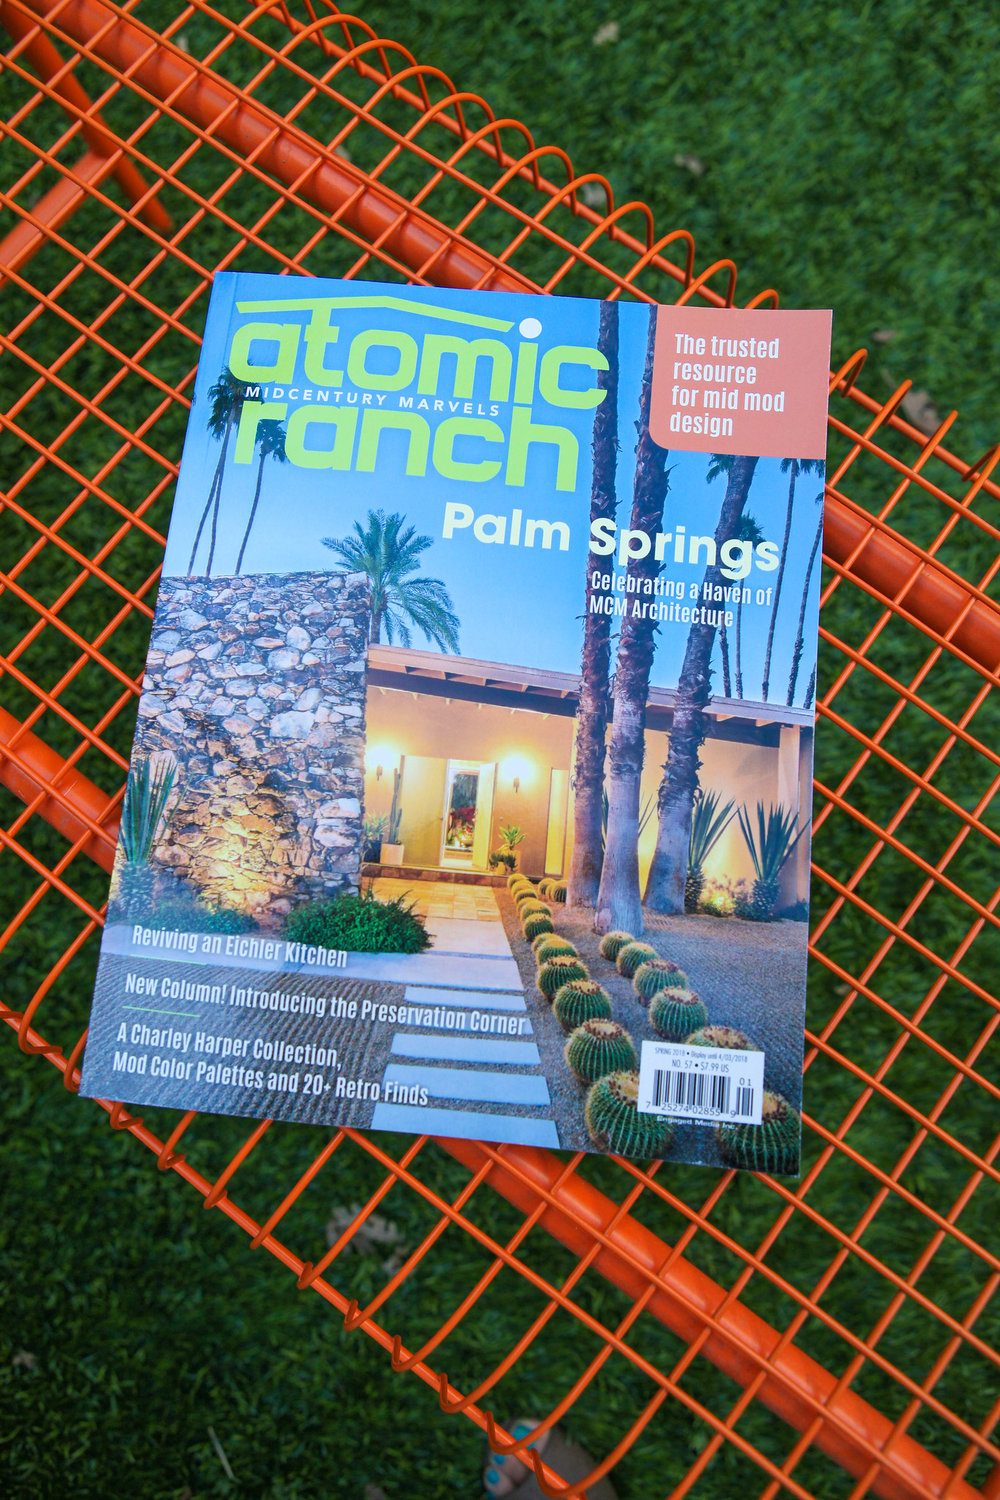 Atomic-Ranch-Spring-2018.jpg